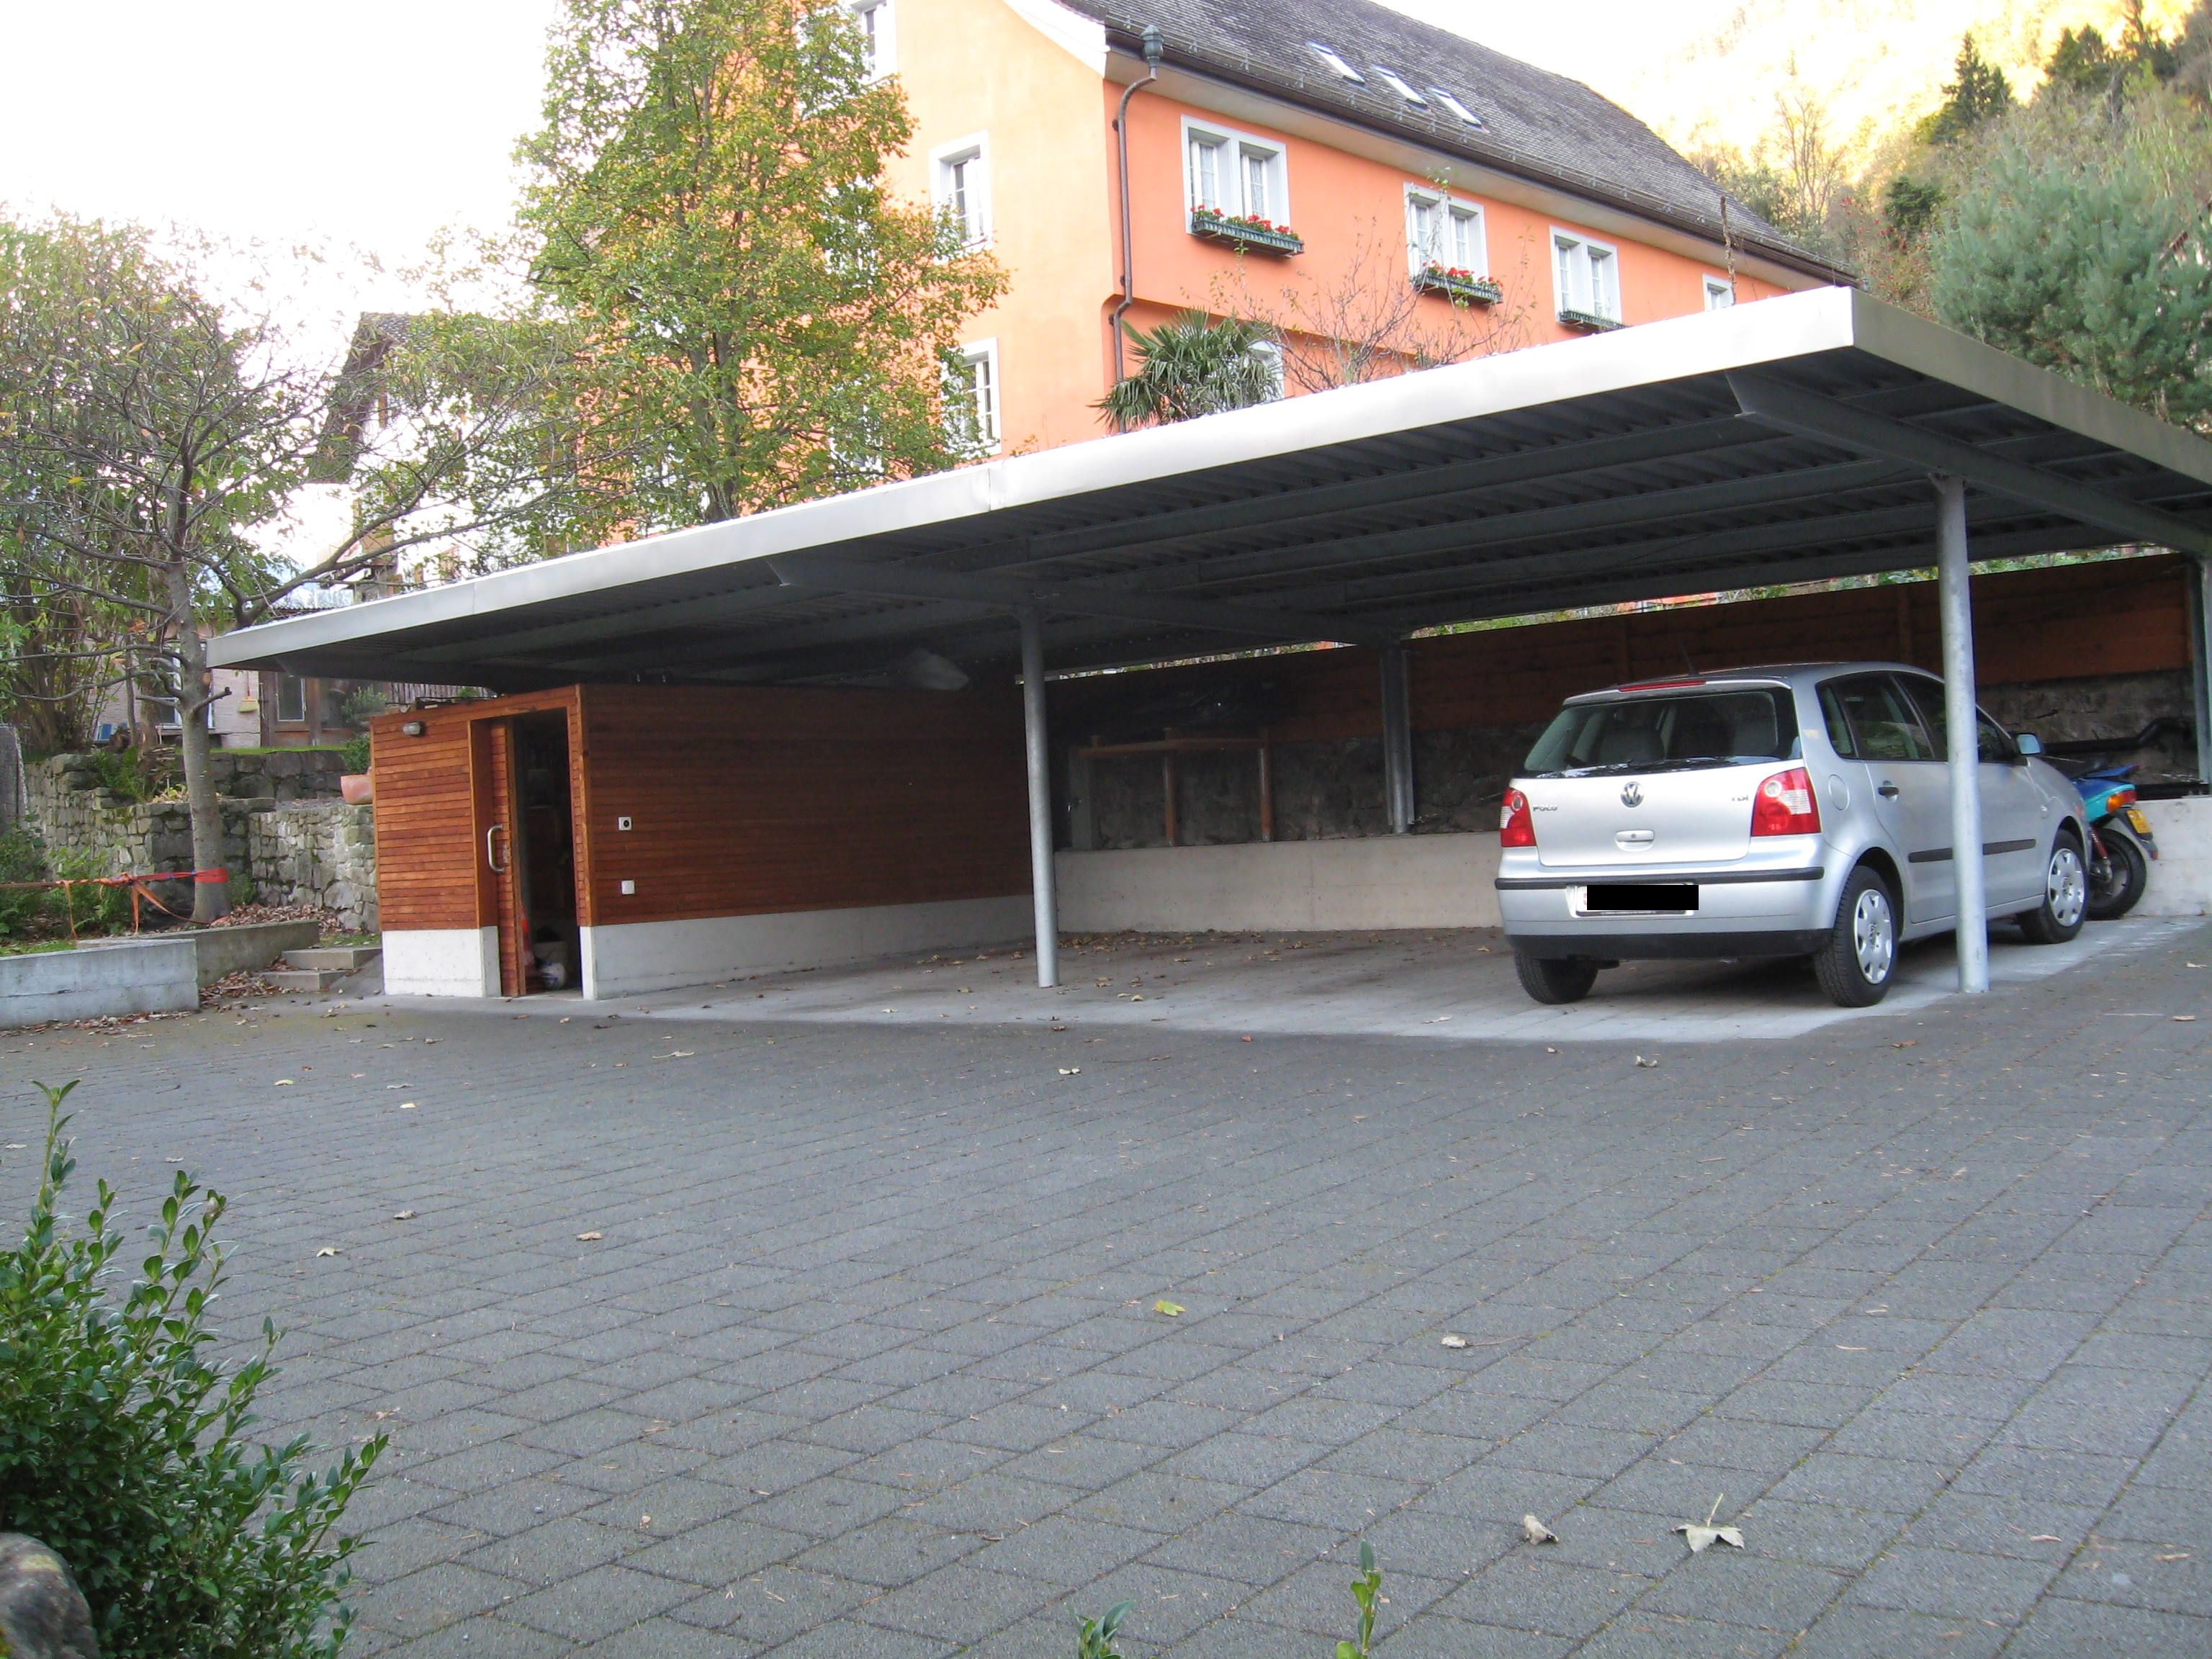 flachdach carport 6 geneigt aus stahl f r 4 autos mit grossen ger teschuppen fahrradschuppen. Black Bedroom Furniture Sets. Home Design Ideas